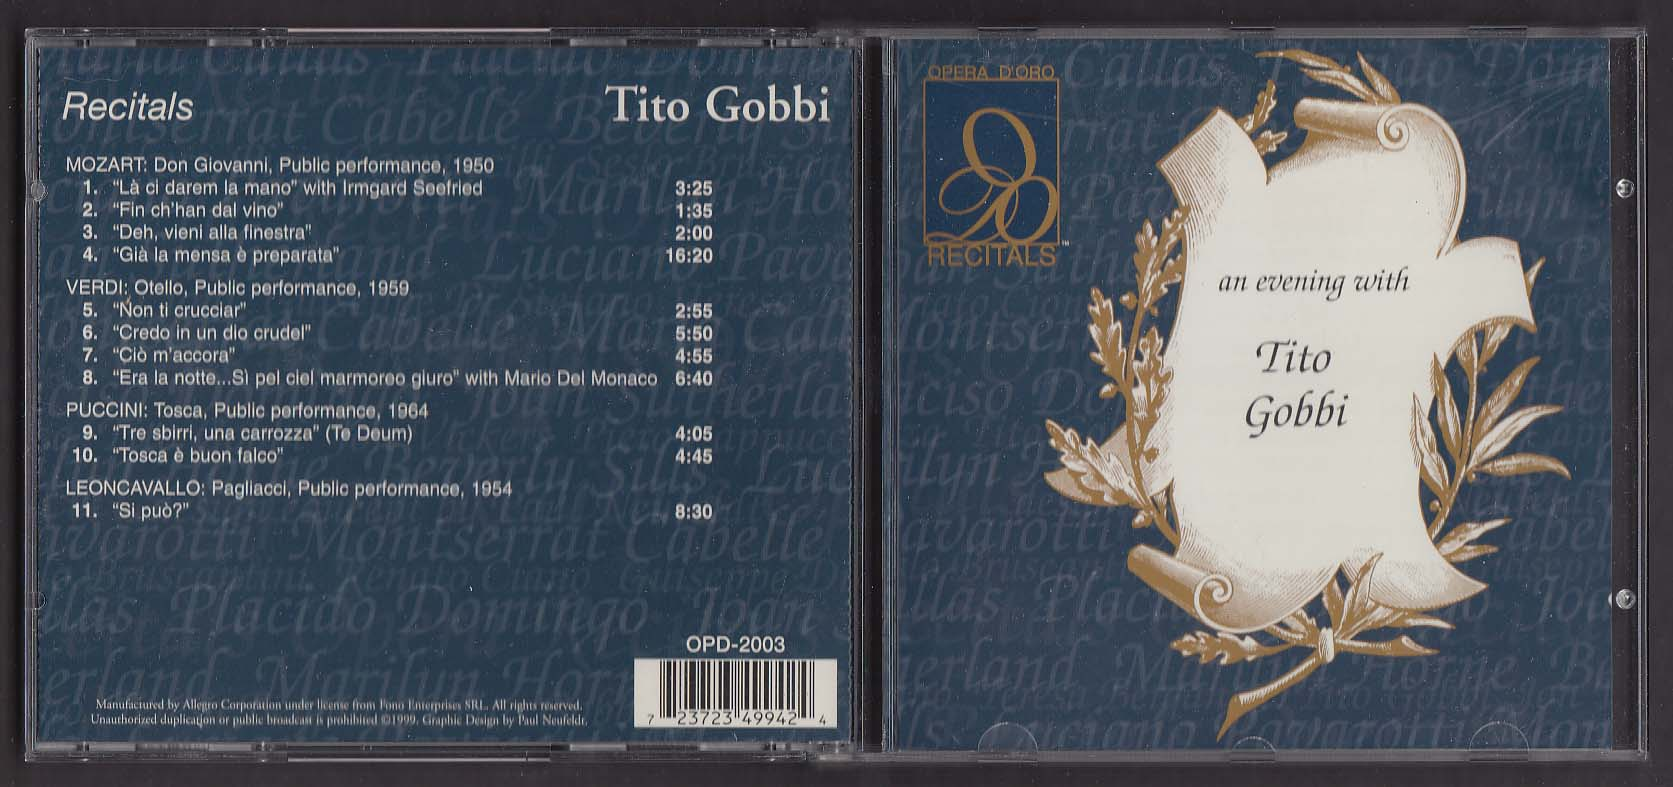 Image for Tito Gobbi: Recitals Mozard Verdi Puccini Leoncavallo ++ OPD-2003 CD 1999